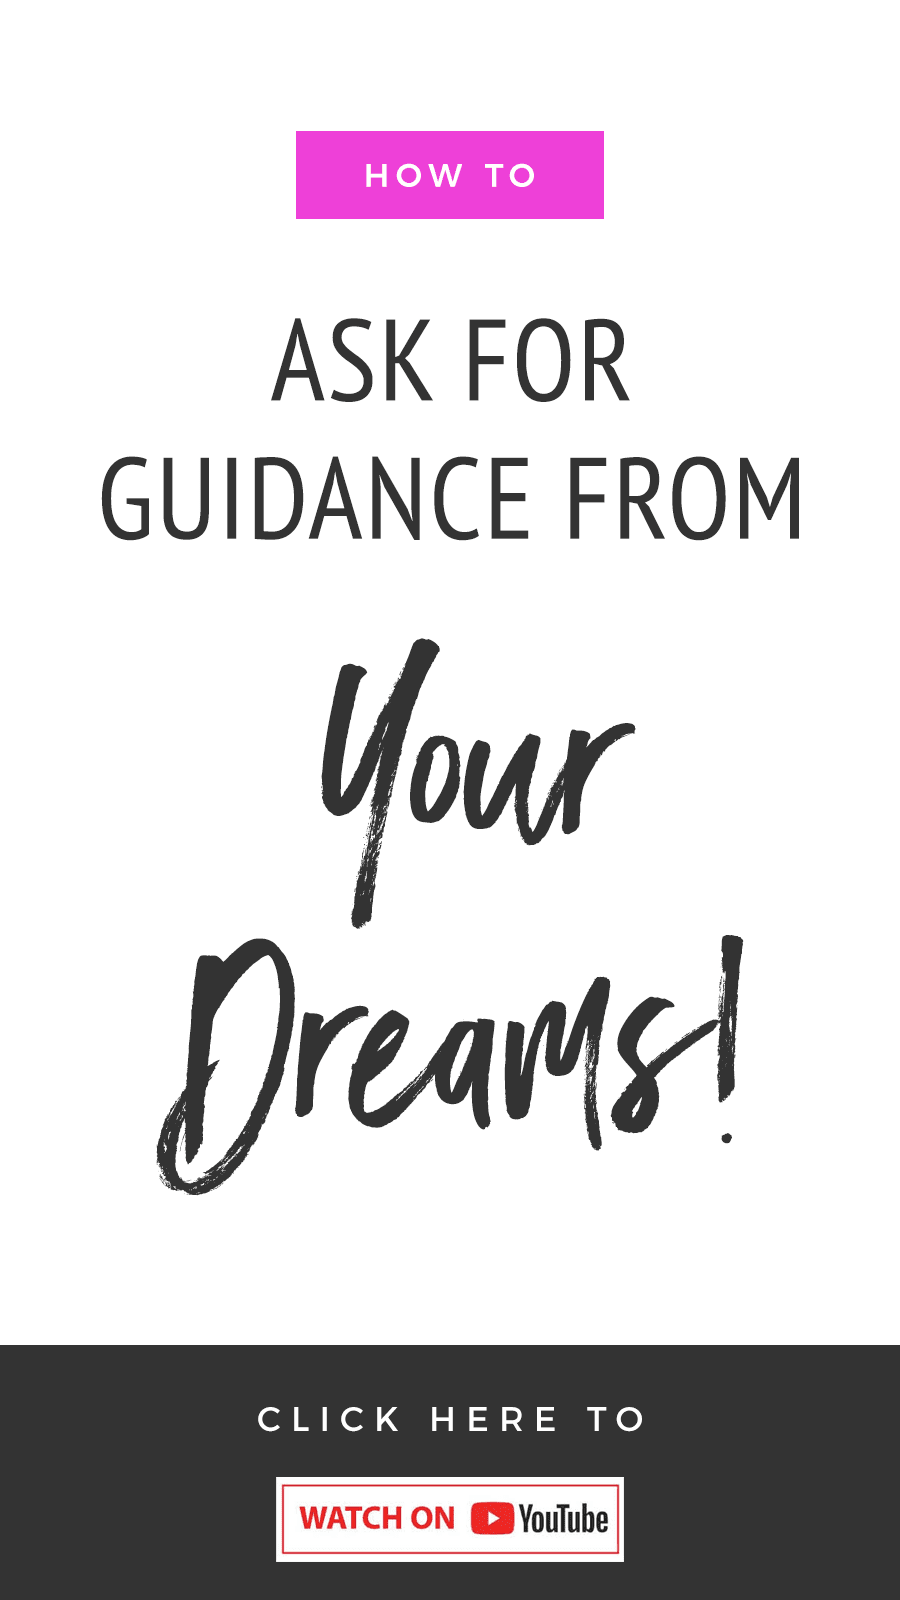 How To Receive Guidance From Your Dreams